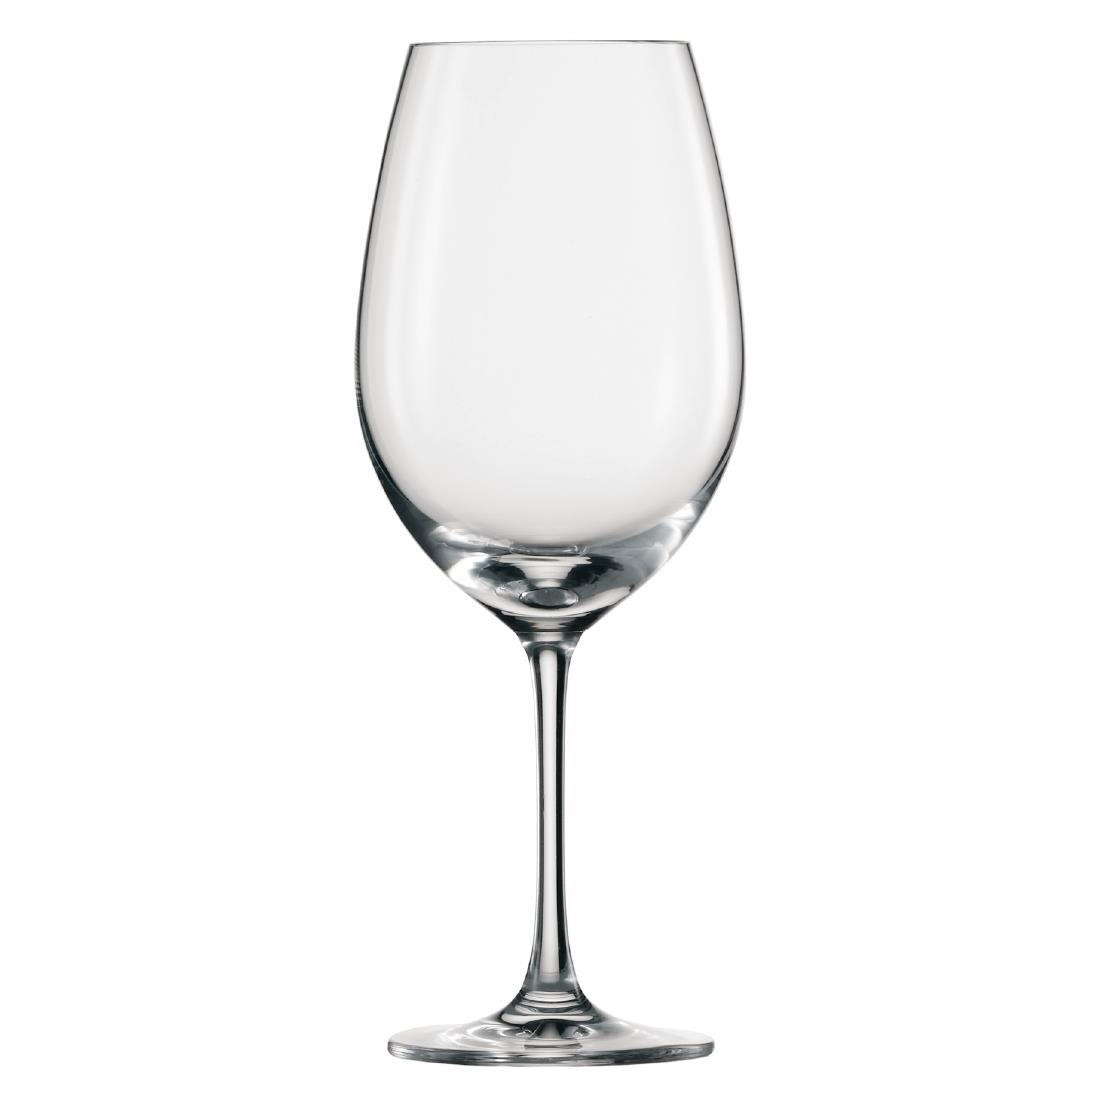 Schott Zwiesel Ivento Red Wine glass 480ml (Pack of 6) Pack of 6 Image